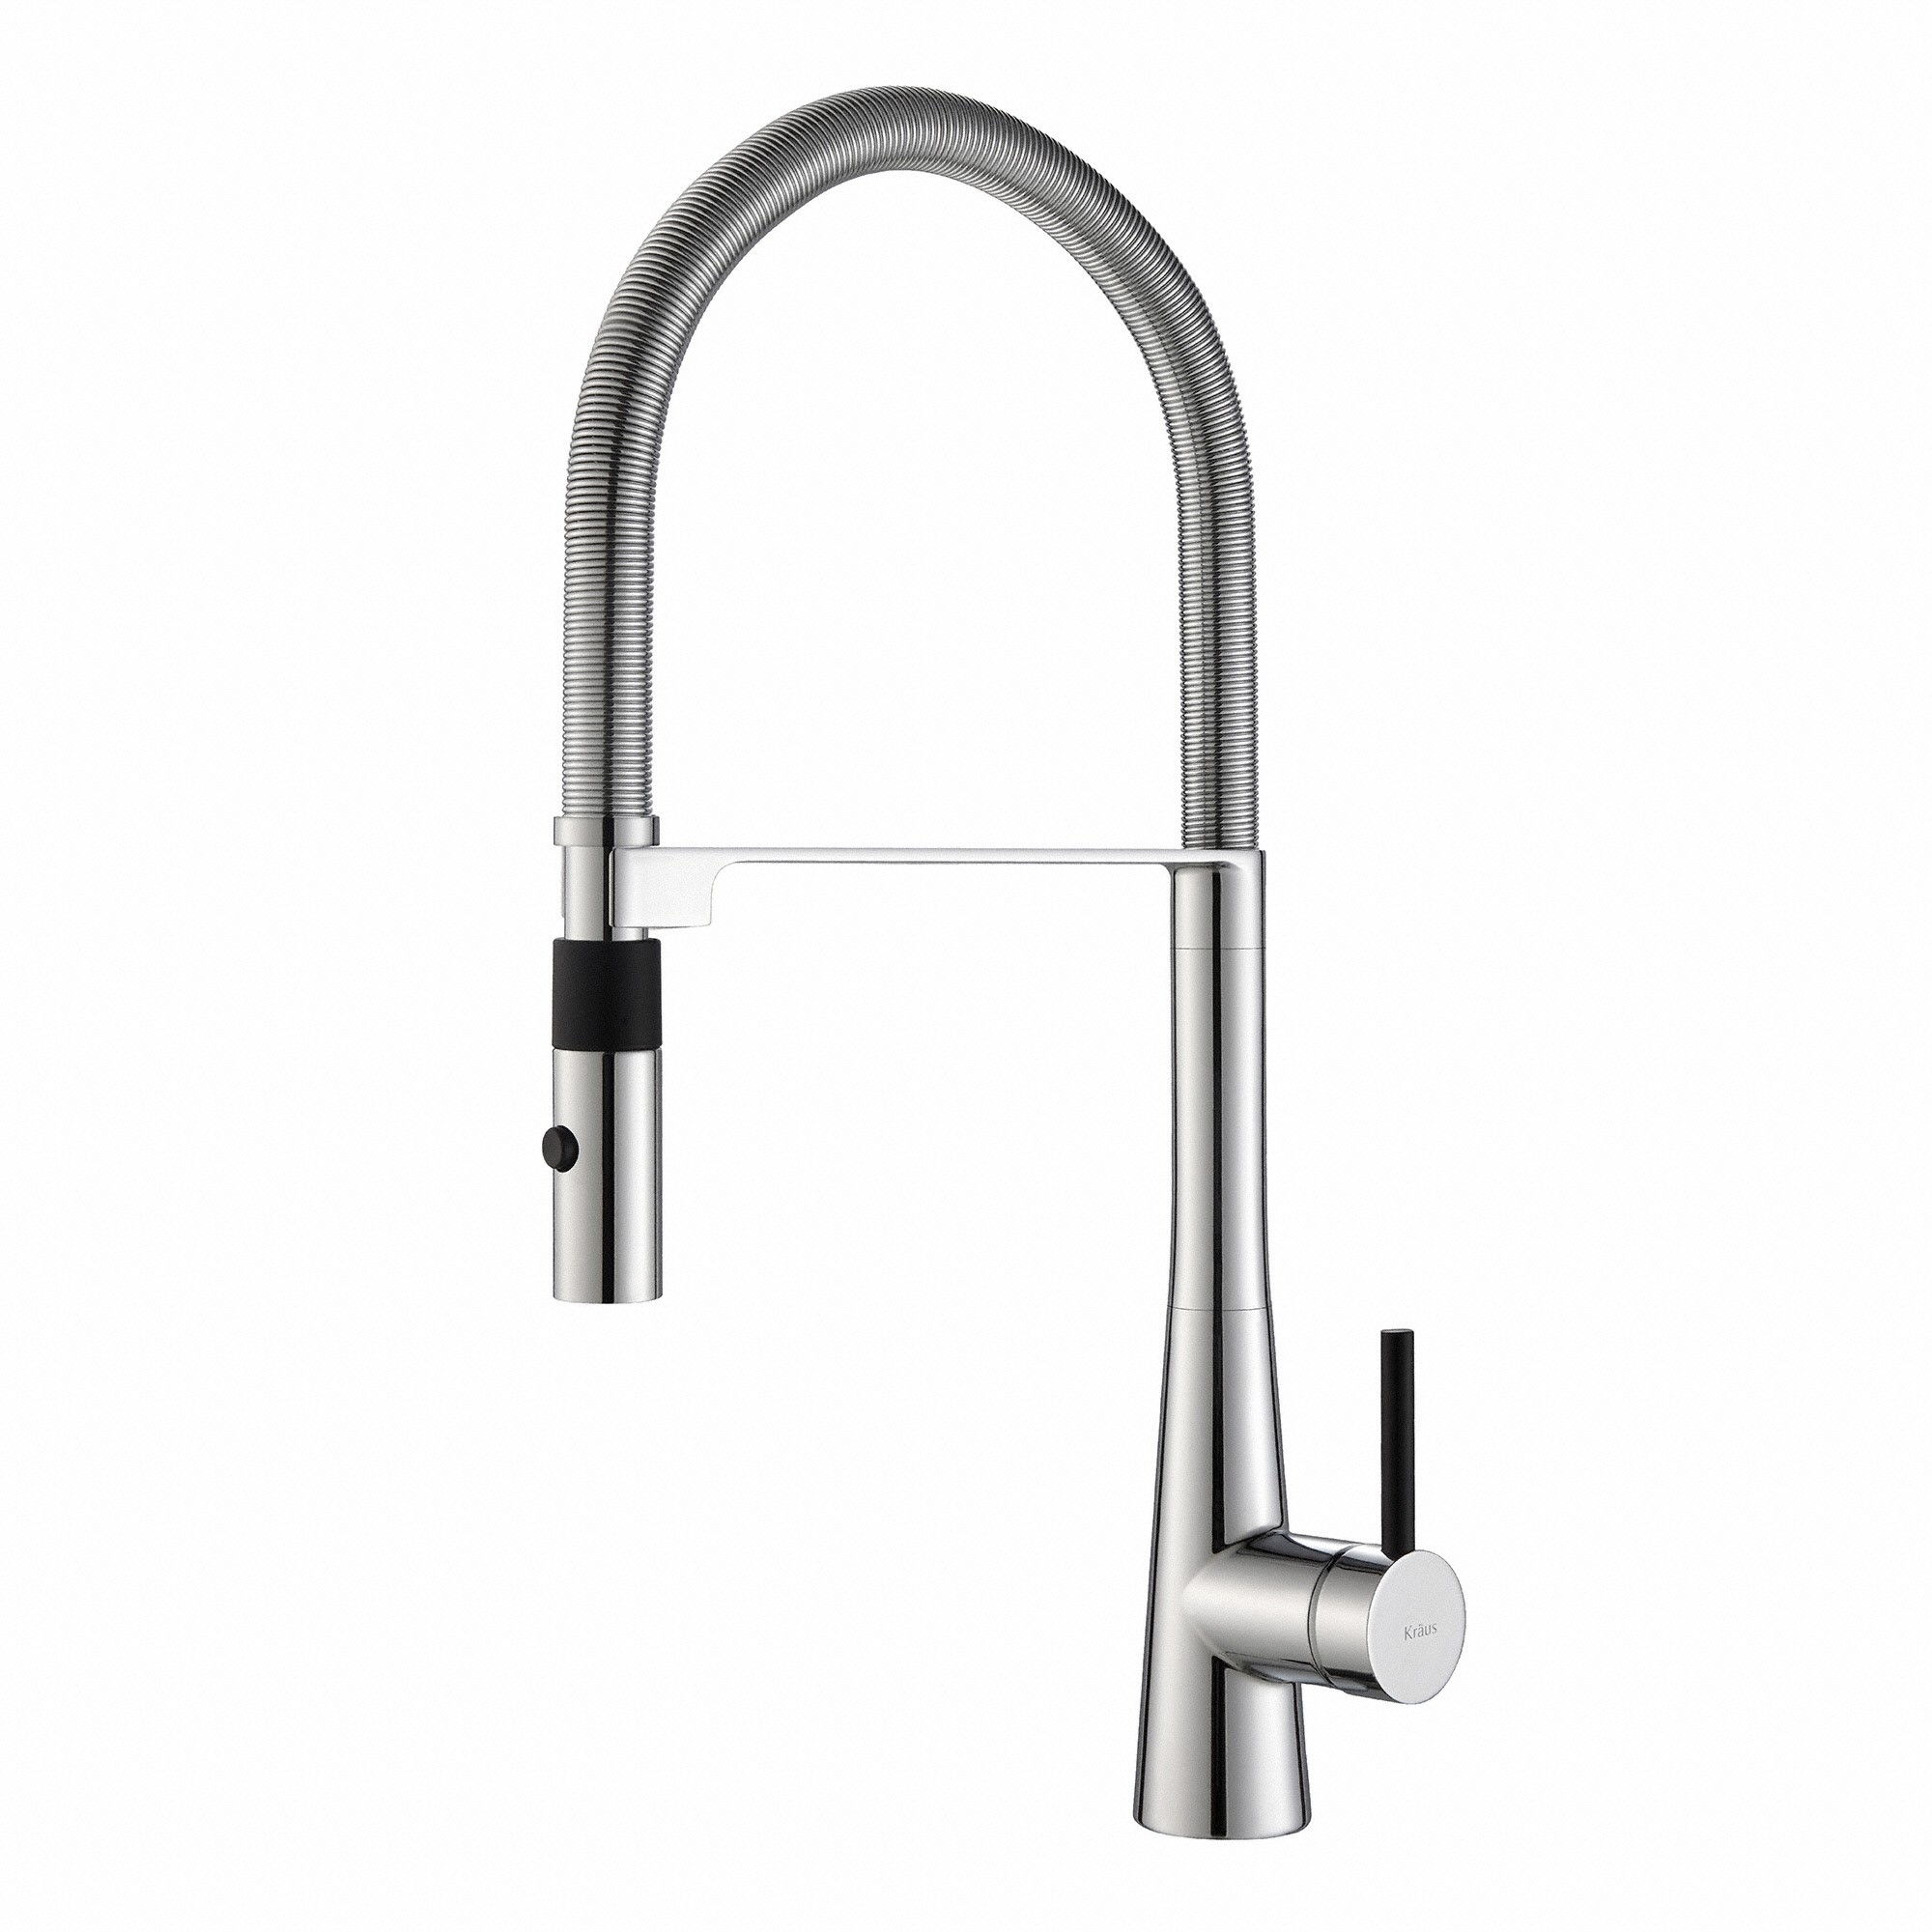 Ideas, kitchen commercial kitchen faucets for your kitchen decor ideas for size 2000 x 2000  .